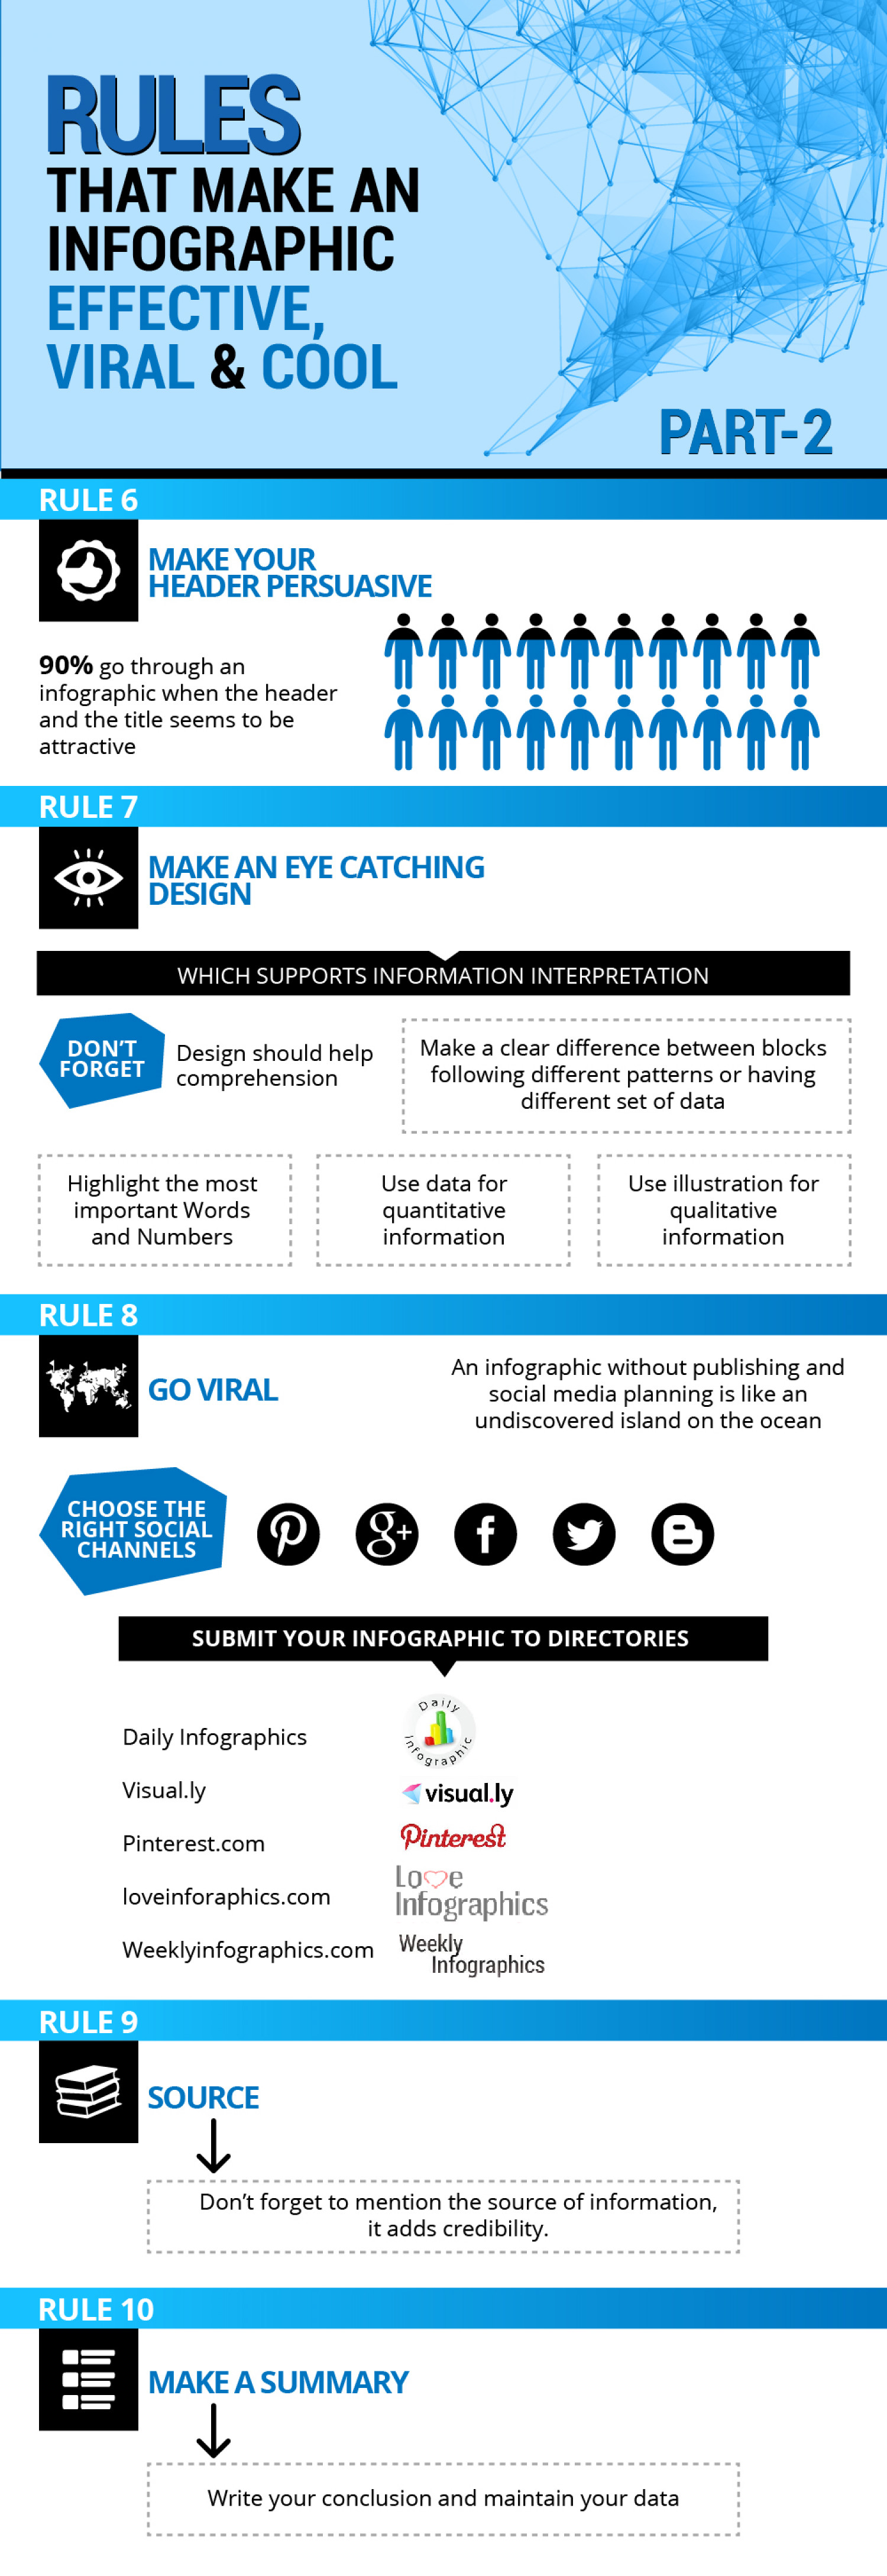 What makes infographic effective? Infographic